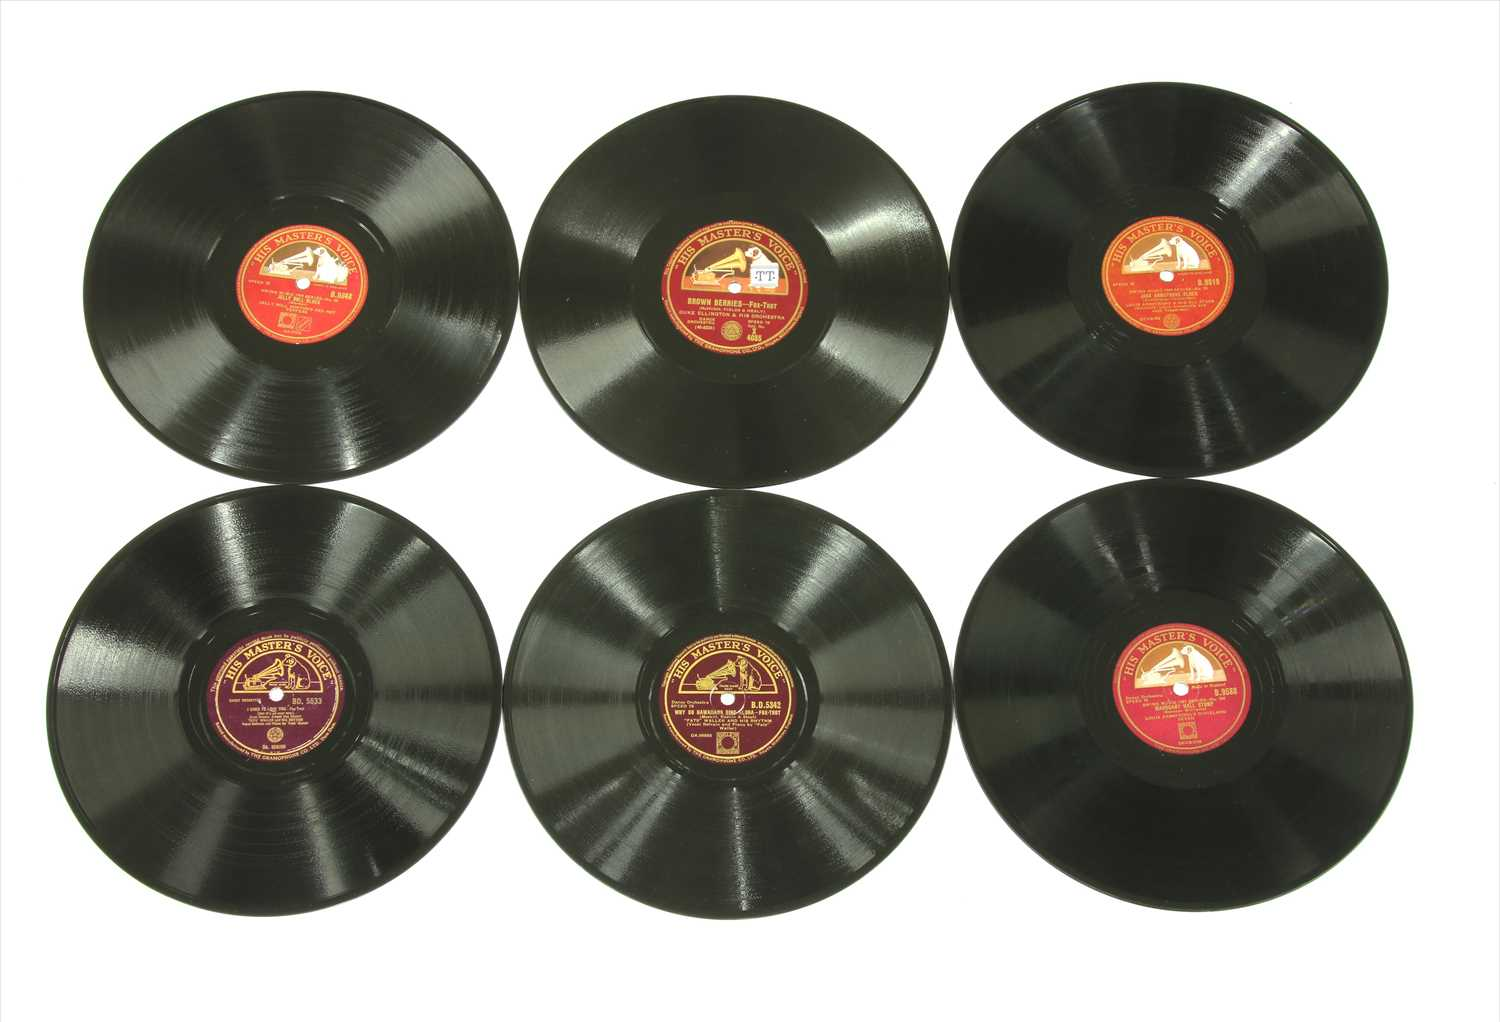 Lot 21-HMV (10in) Shellac